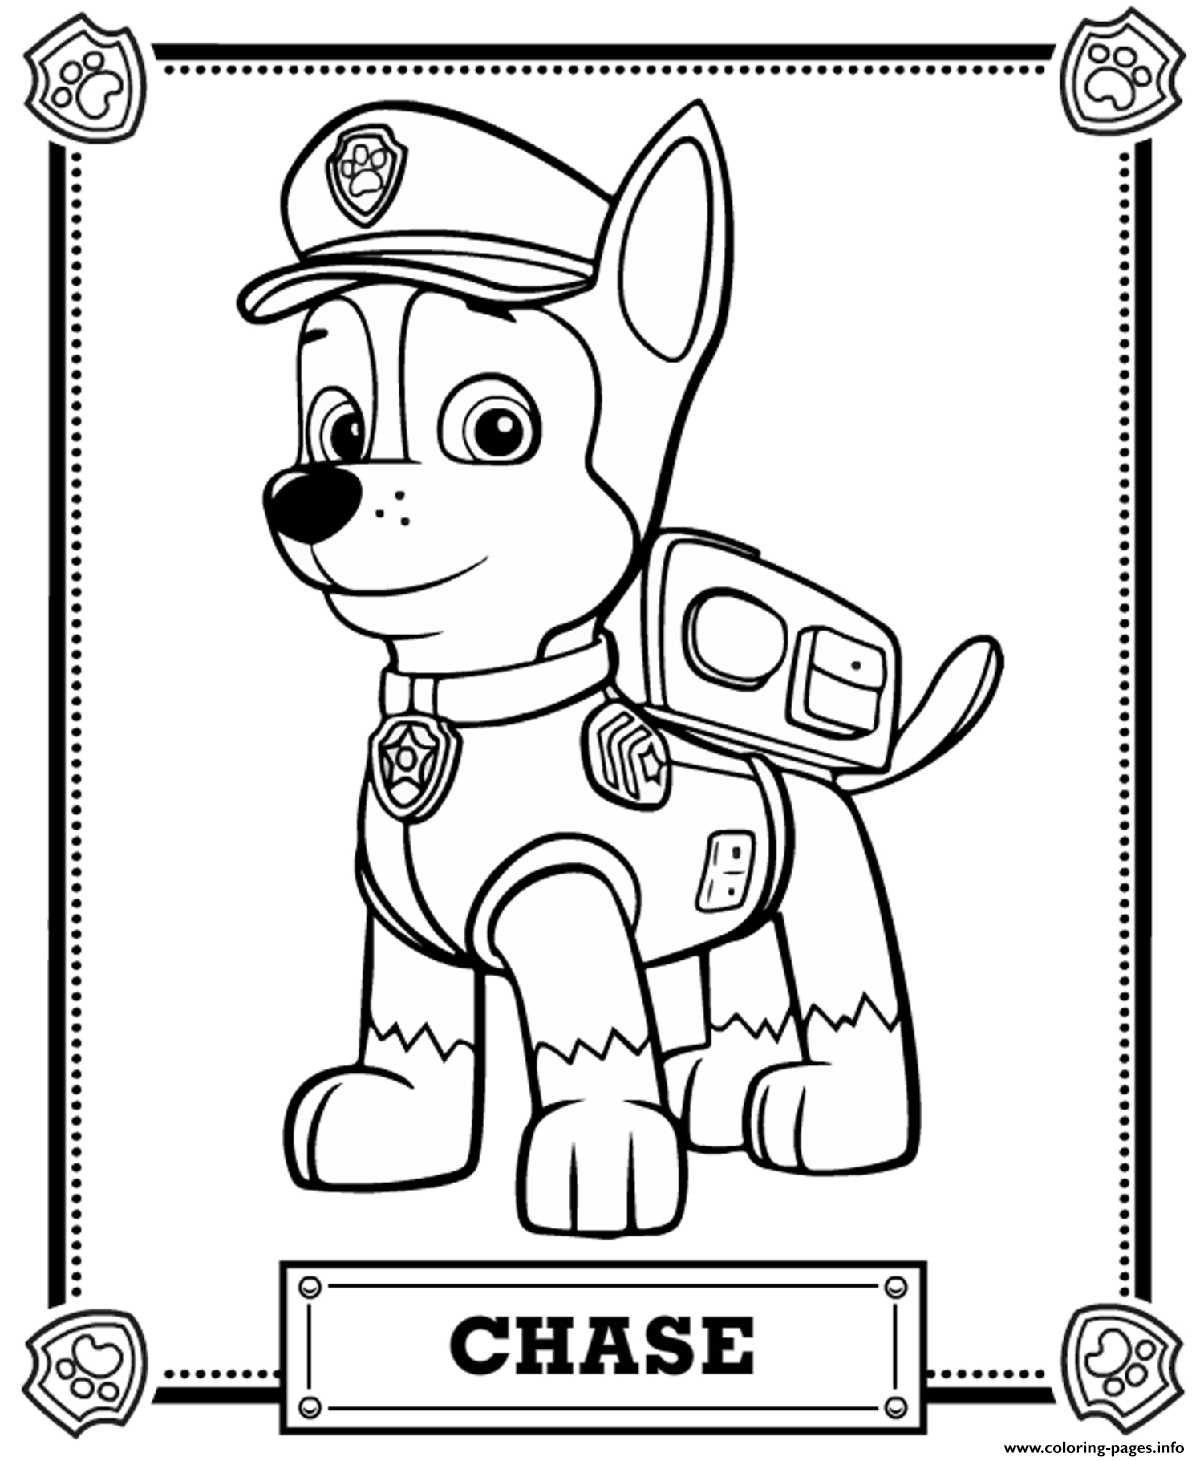 photograph about Paw Patrol Printable Pictures named Paw Patrol Chase Coloring Webpages Printable